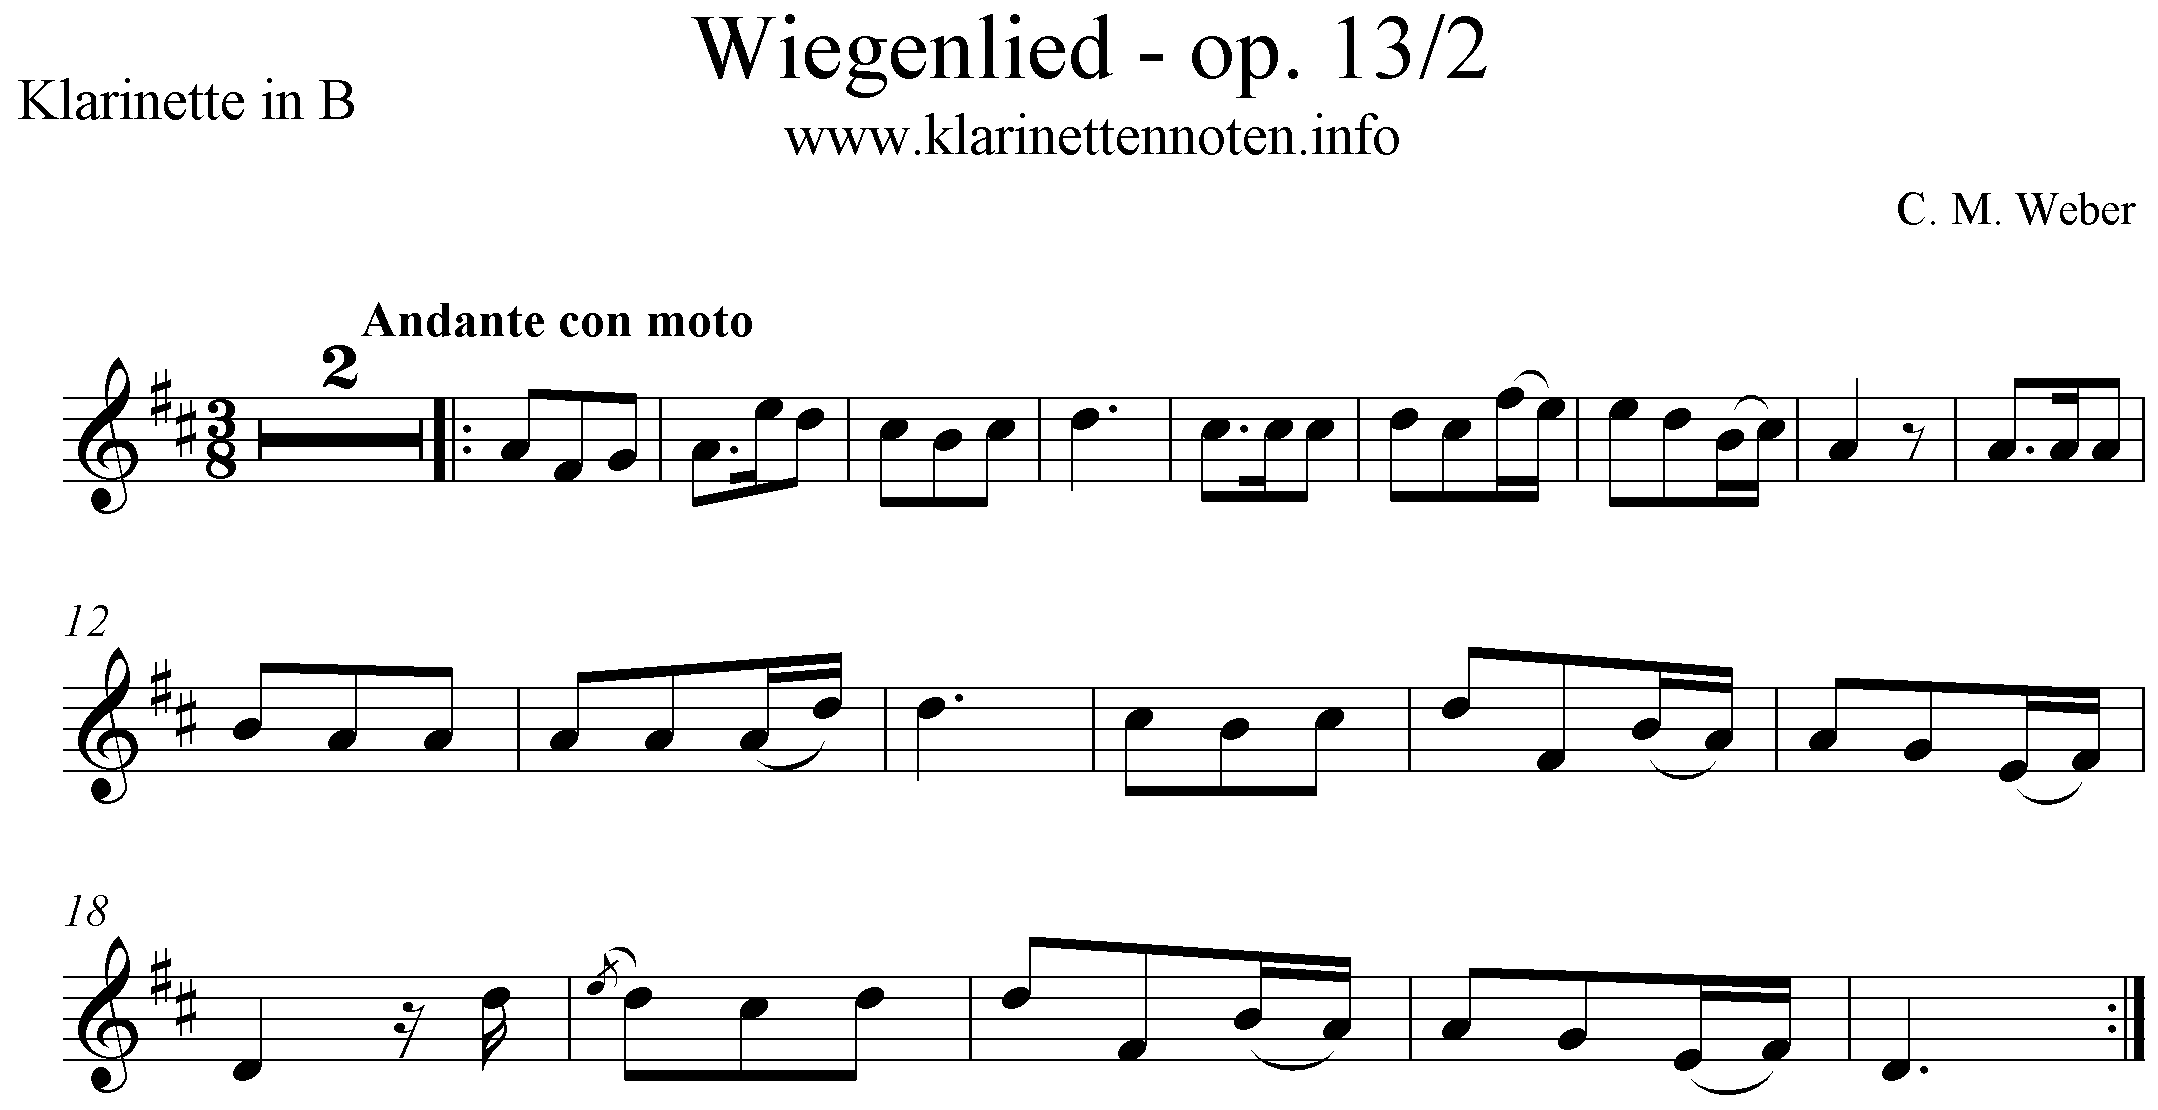 Wiegenlied, Weber, op.13/2, Lullaby, Cradle Song